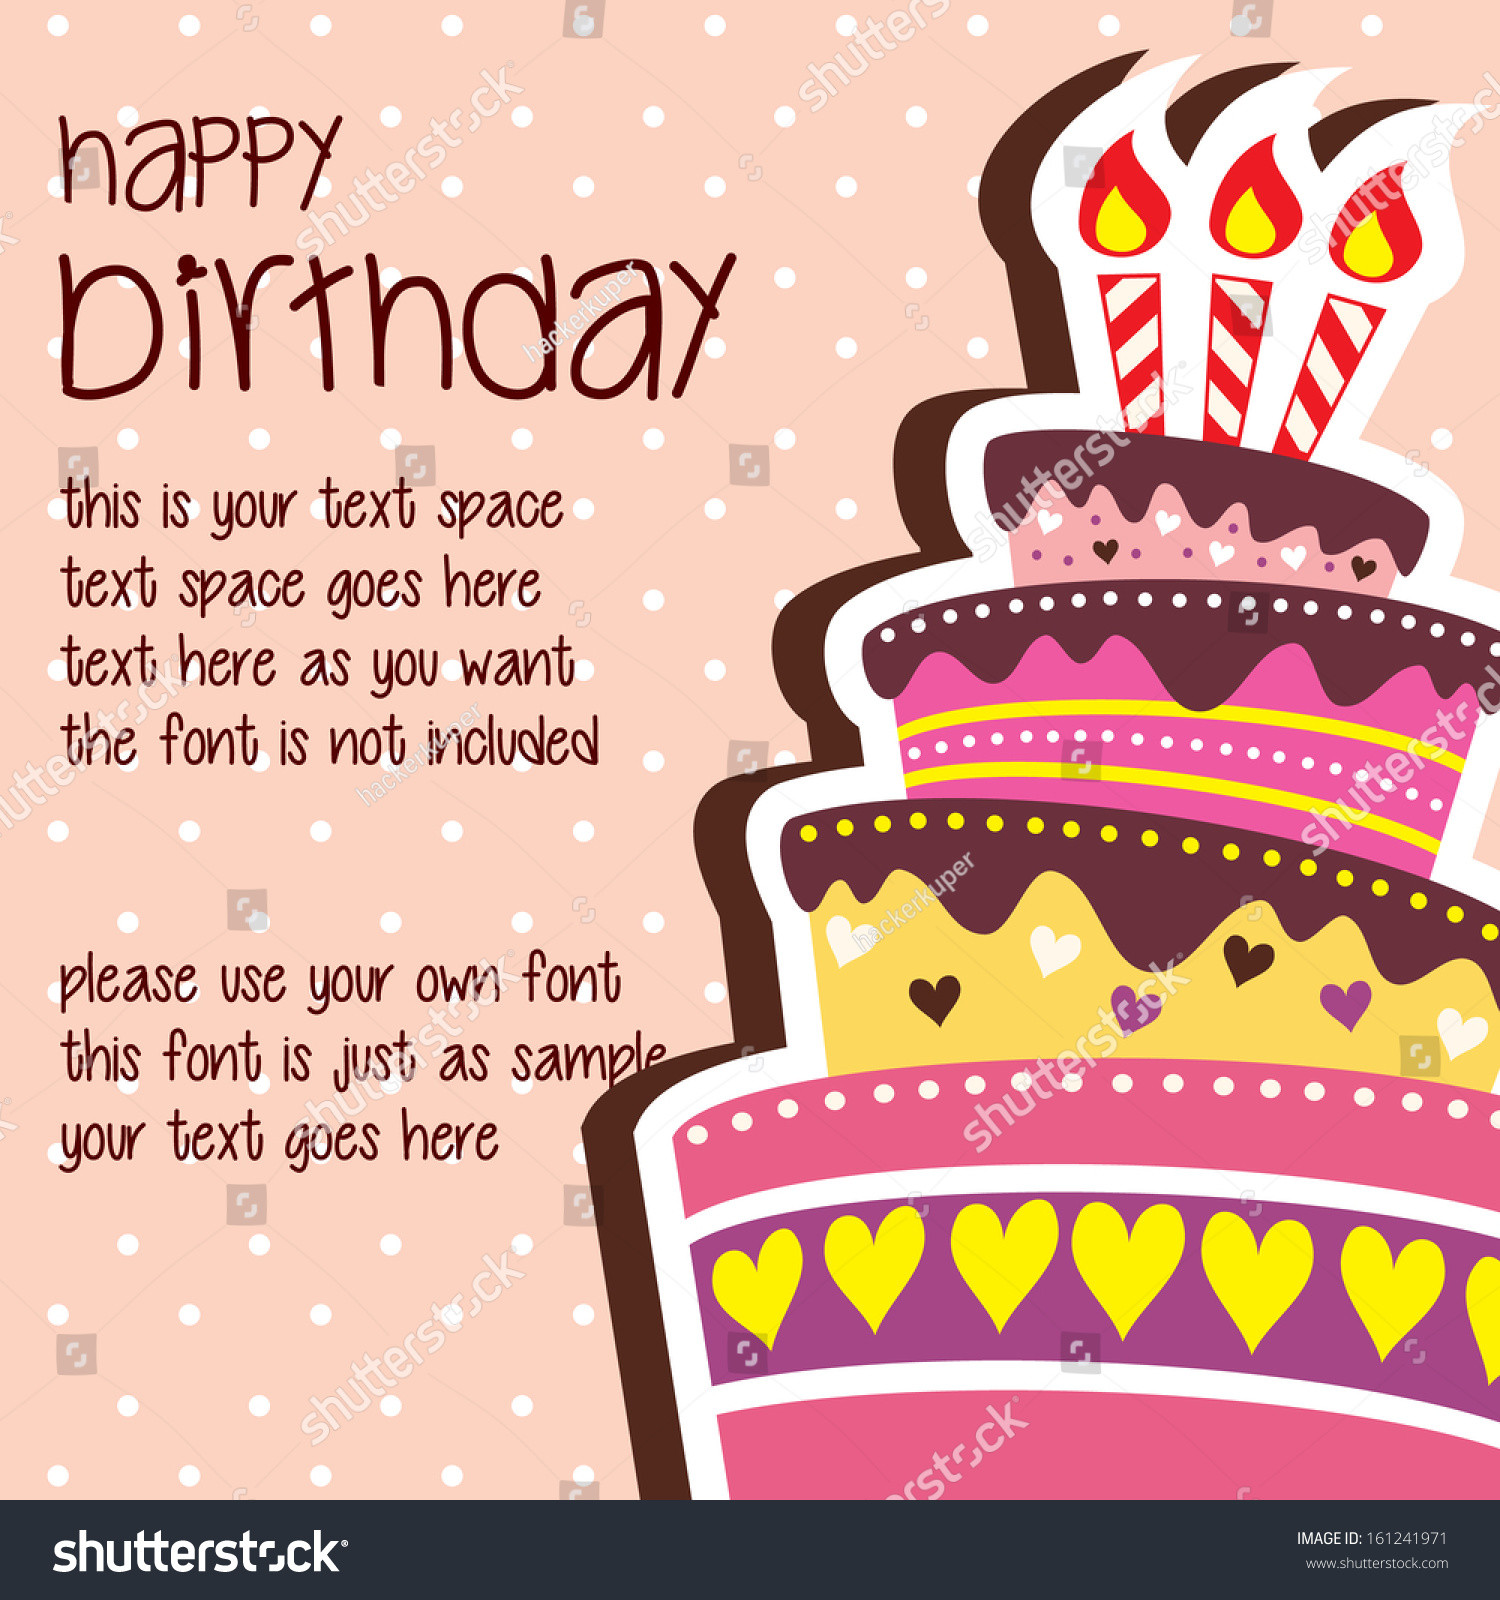 Best ideas about Happy Birthday Card Template . Save or Pin Birthday Card Template Now.